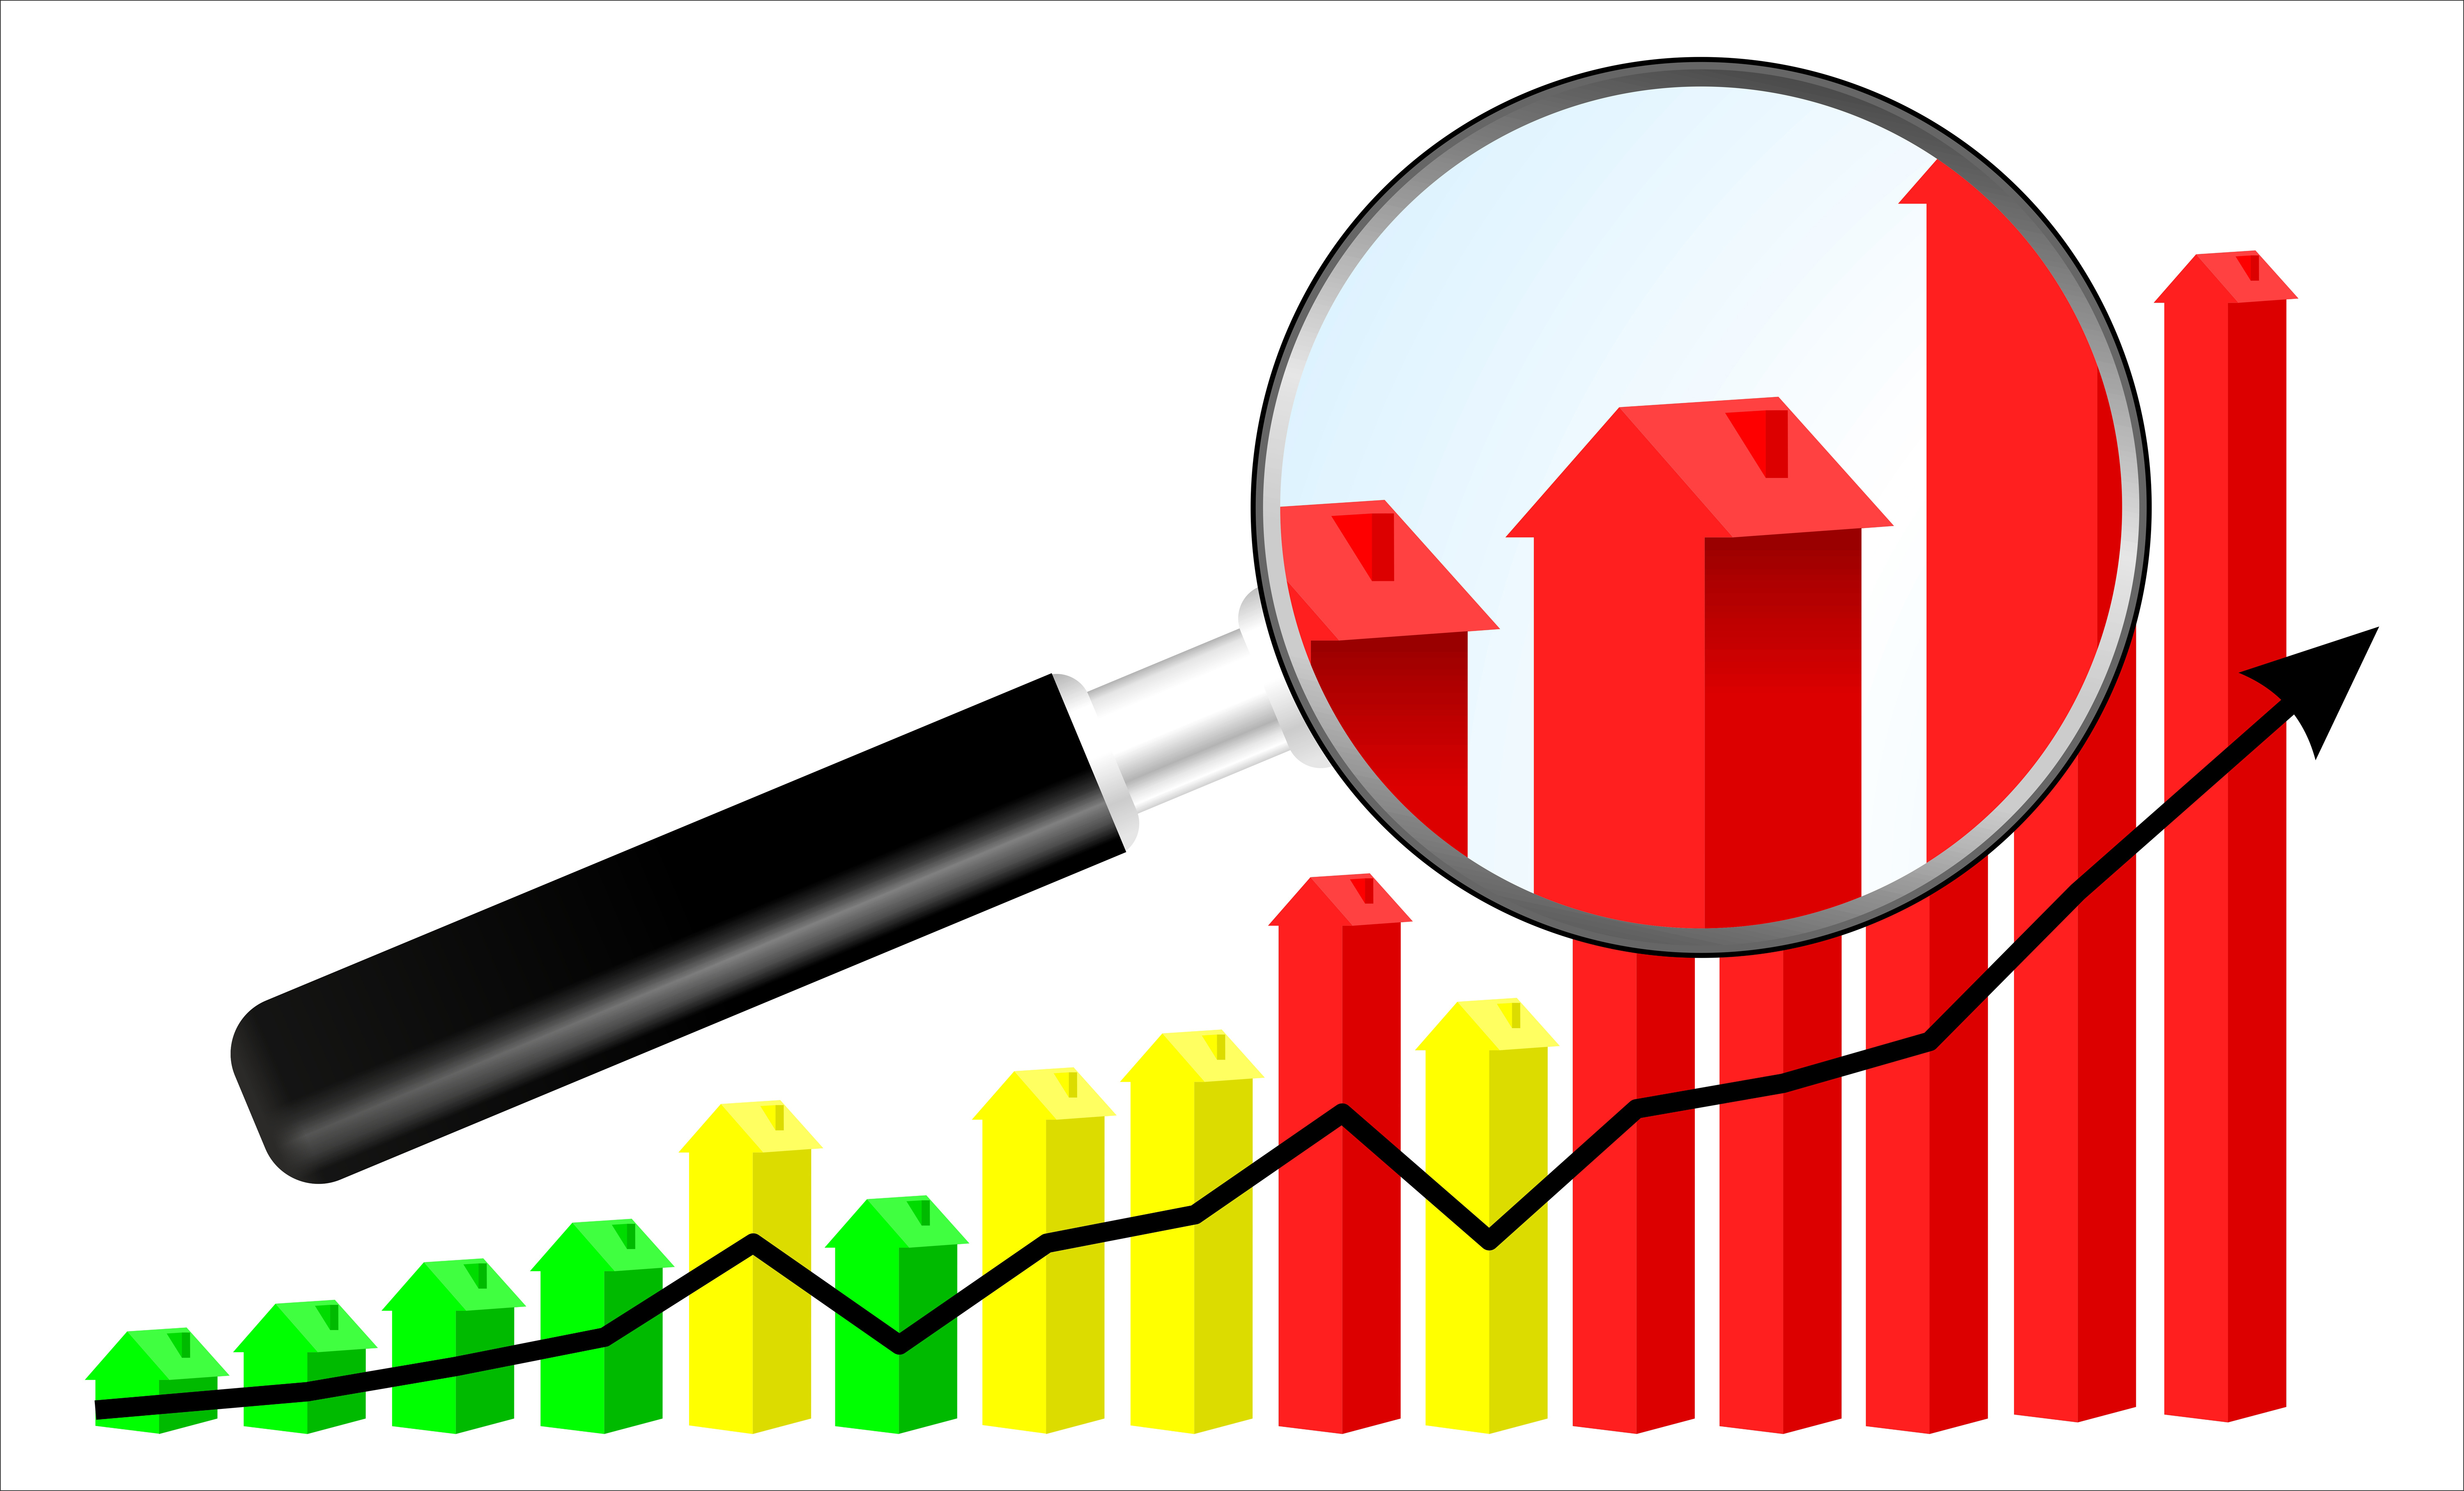 Santa Clarita real estate market update by the experts